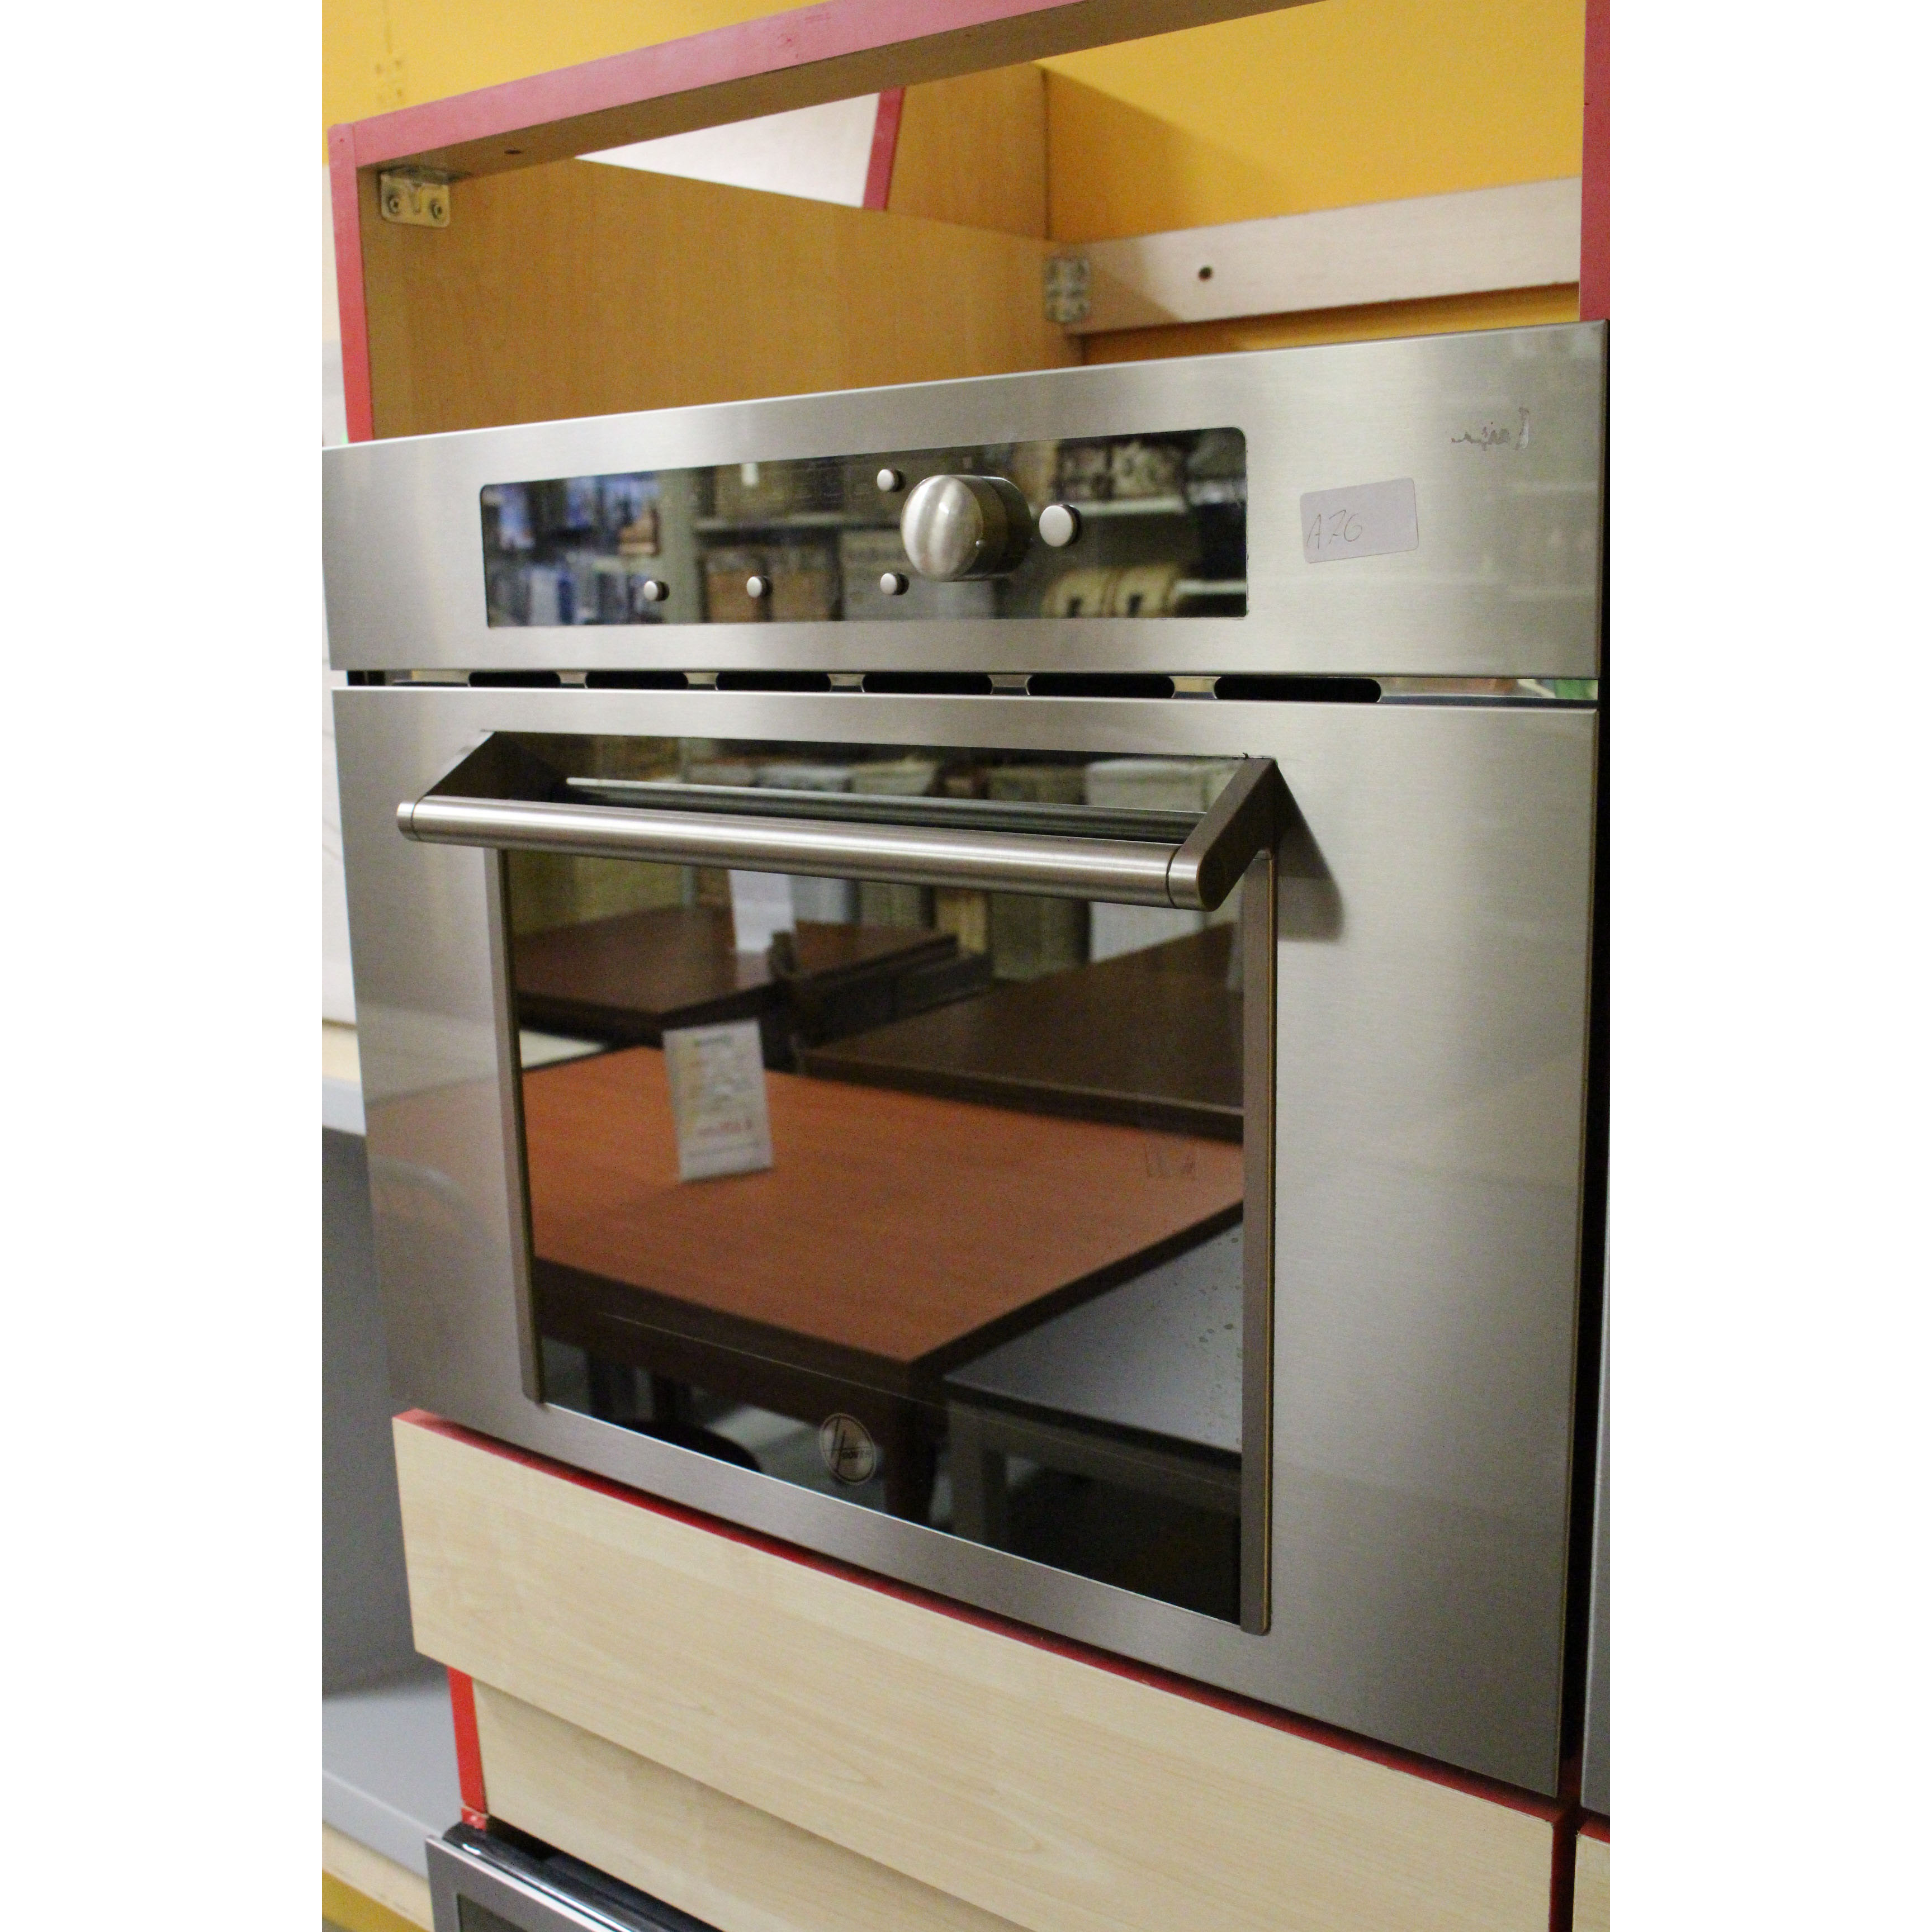 Forno a microonde a incasso hoover hbm 310 x - Forno incasso microonde ...